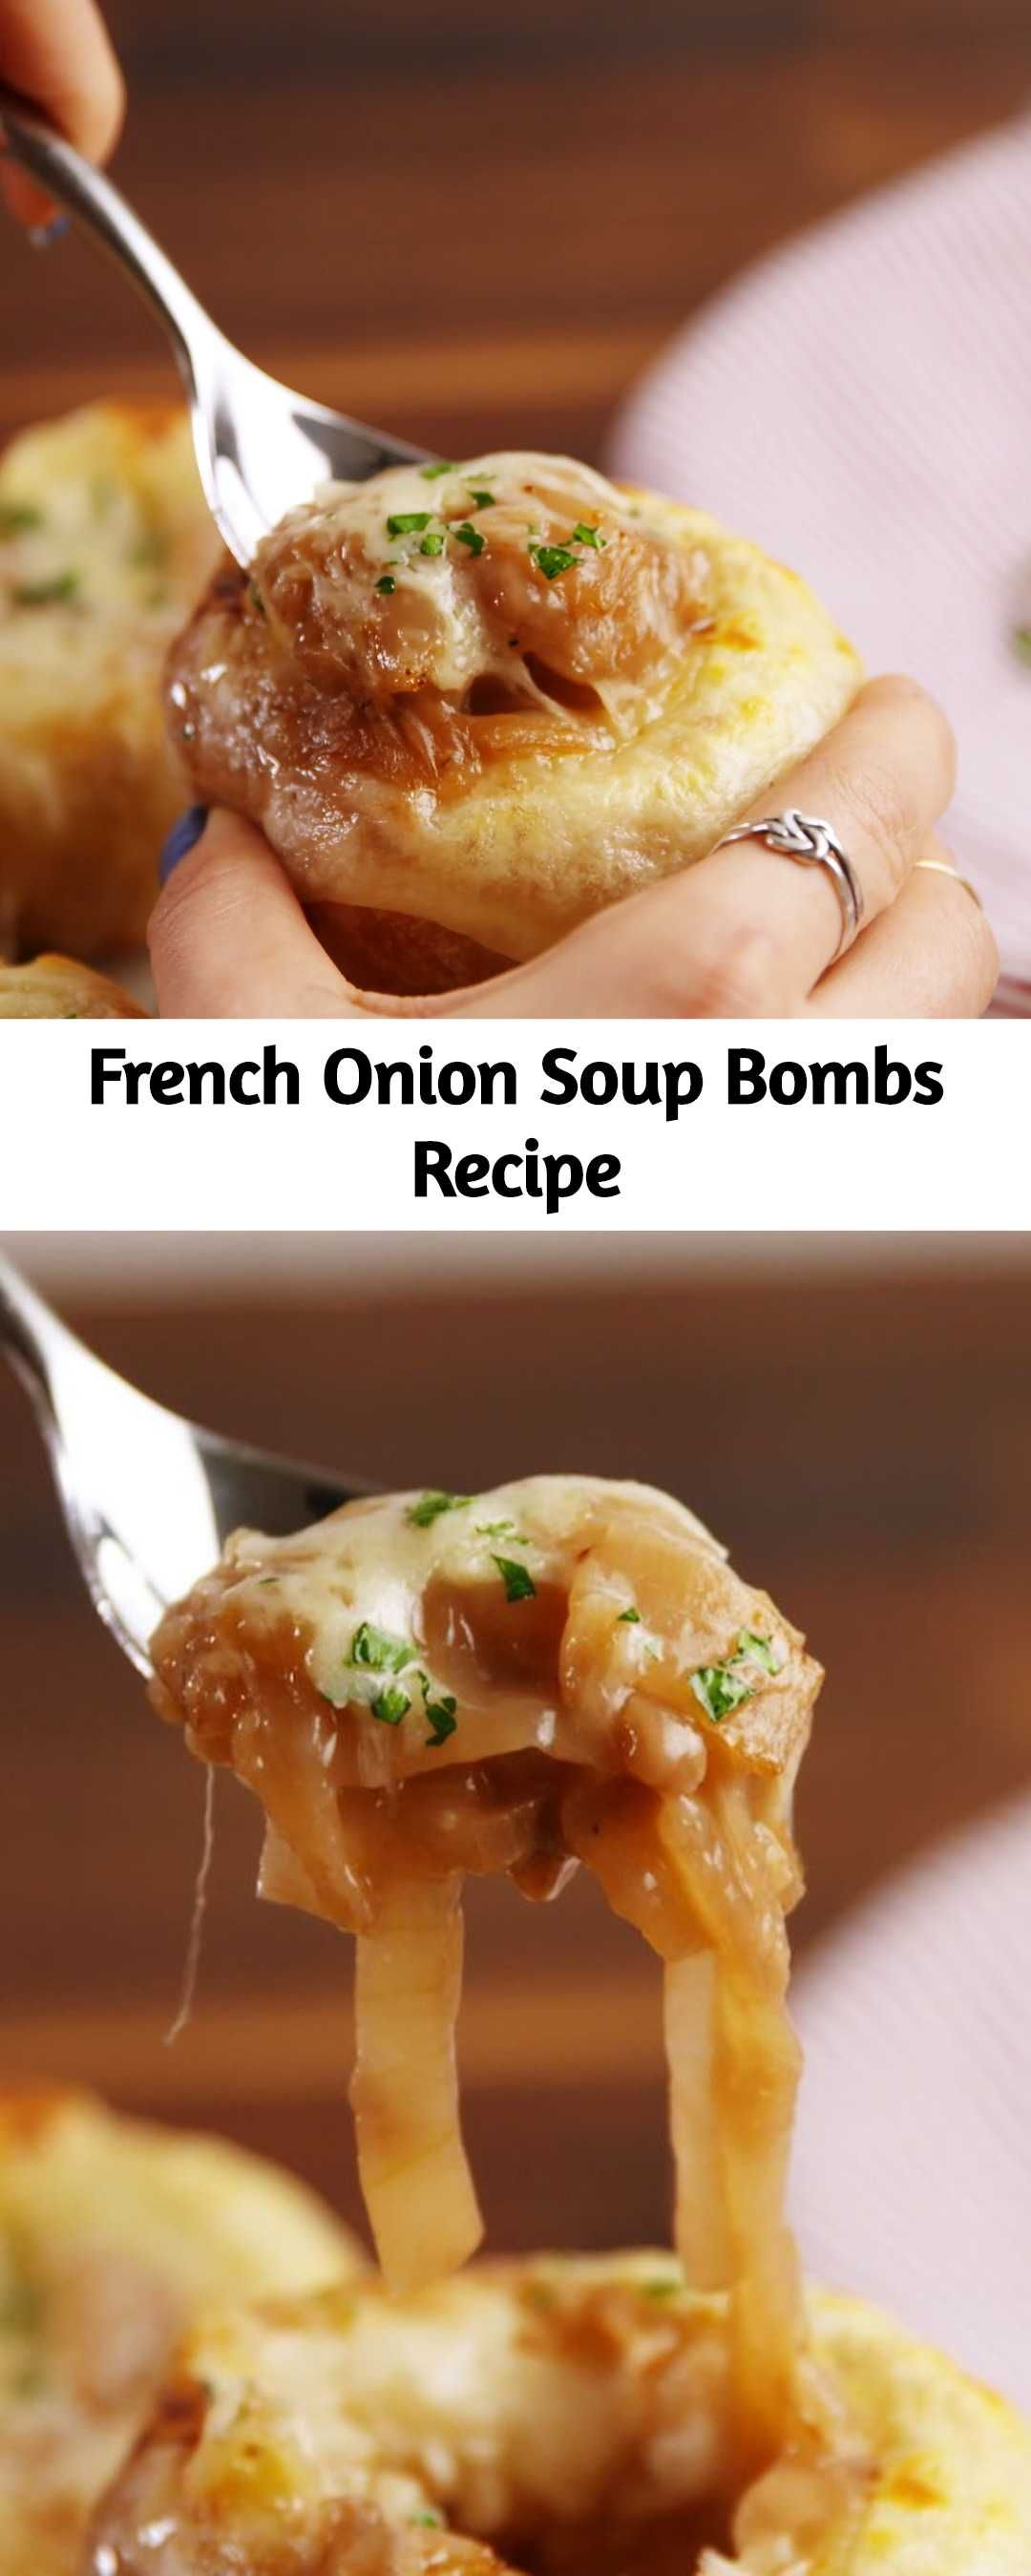 French Onion Soup Bombs Recipe - Mom Secret Ingredients ...